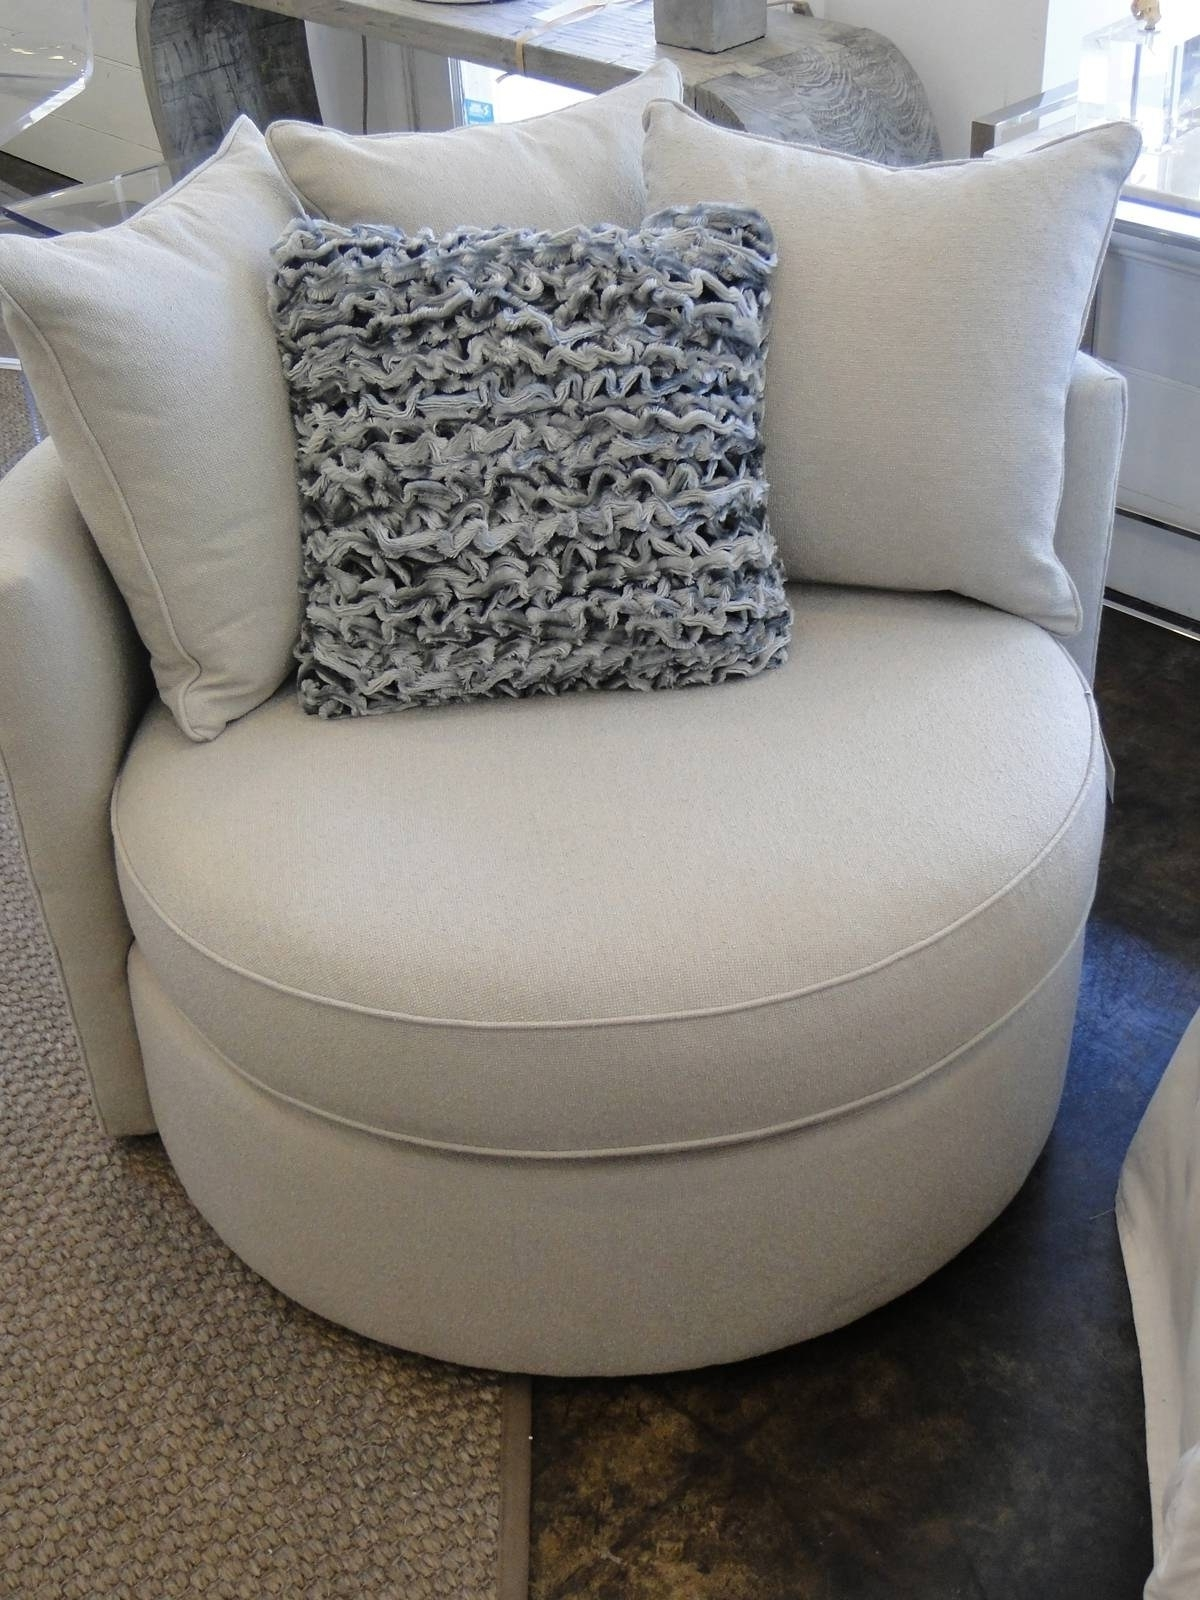 Most Popular Round Swivel Sofa Chairs In Inspirational Oversized Sofa Chair (37 Photos) (View 3 of 15)